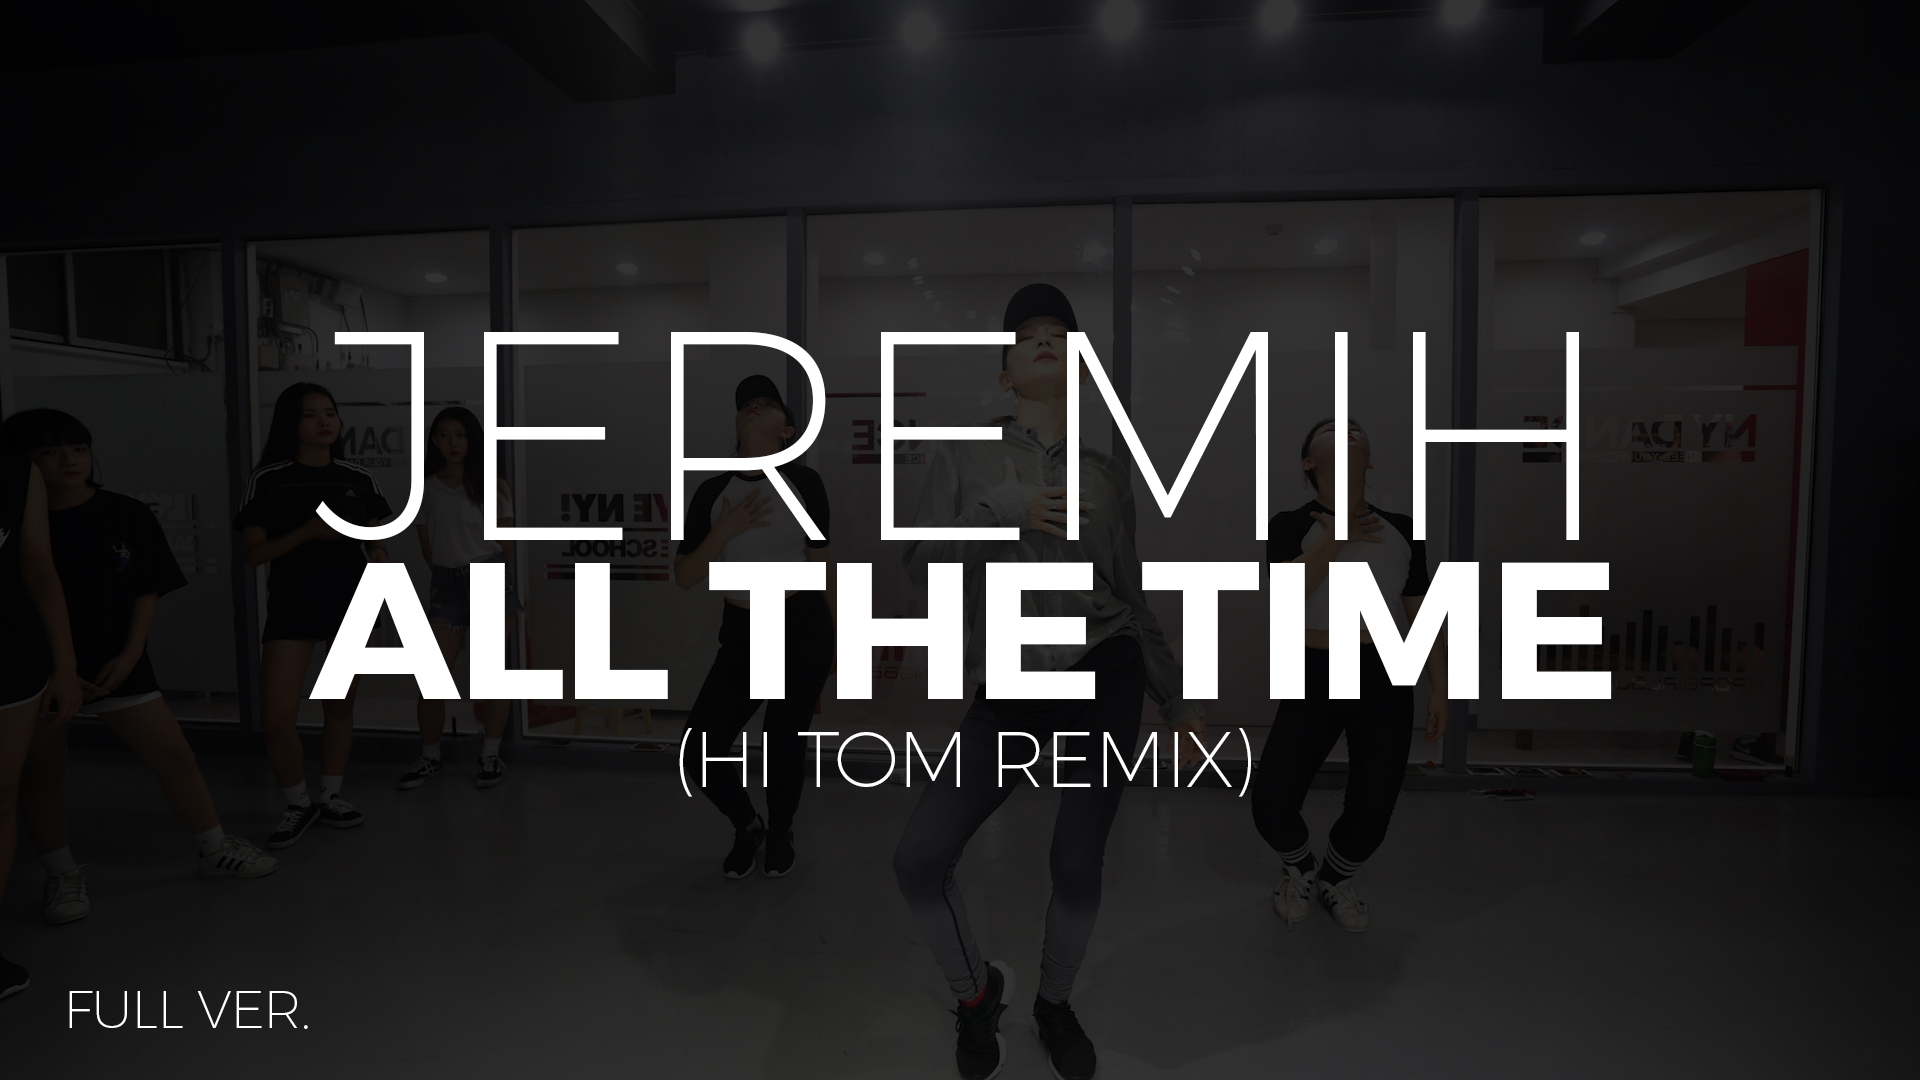 Jeremih – All The Time (Hi tom remix) Choreography by Funky Y